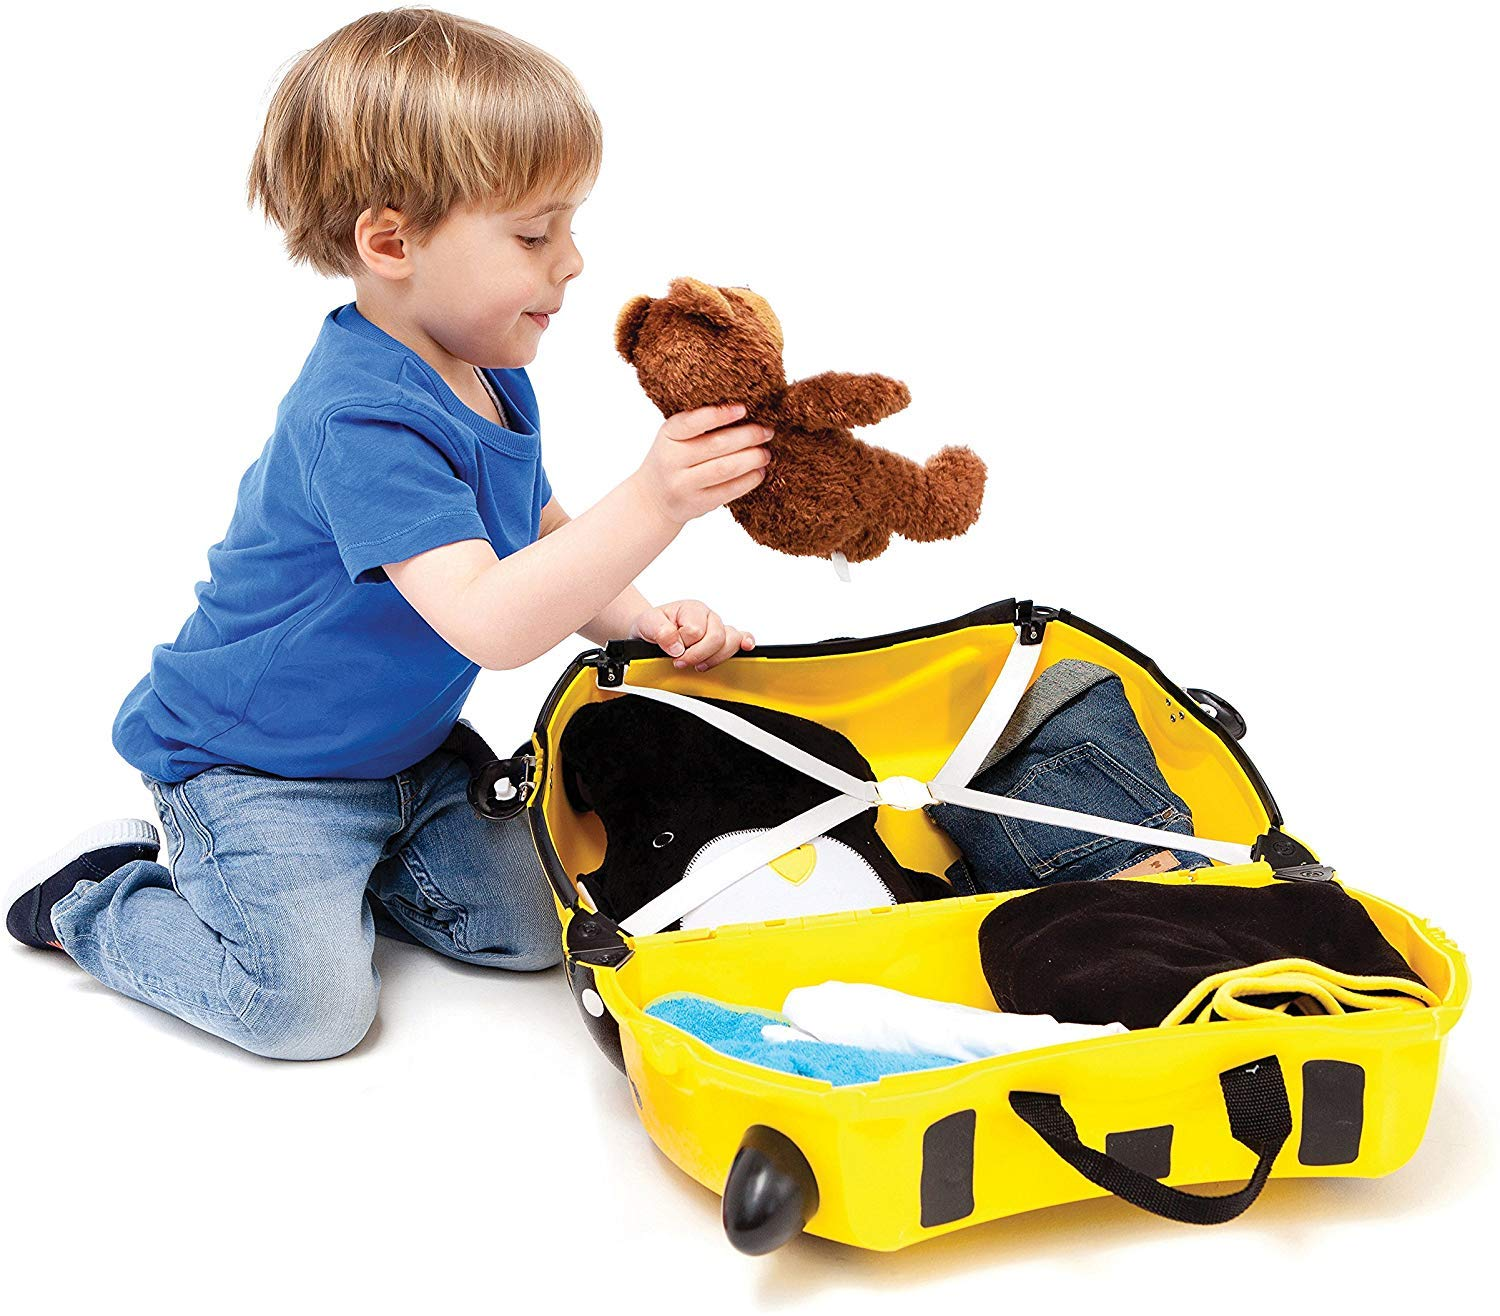 Trunki - Andador: Amazon.es: Bebé